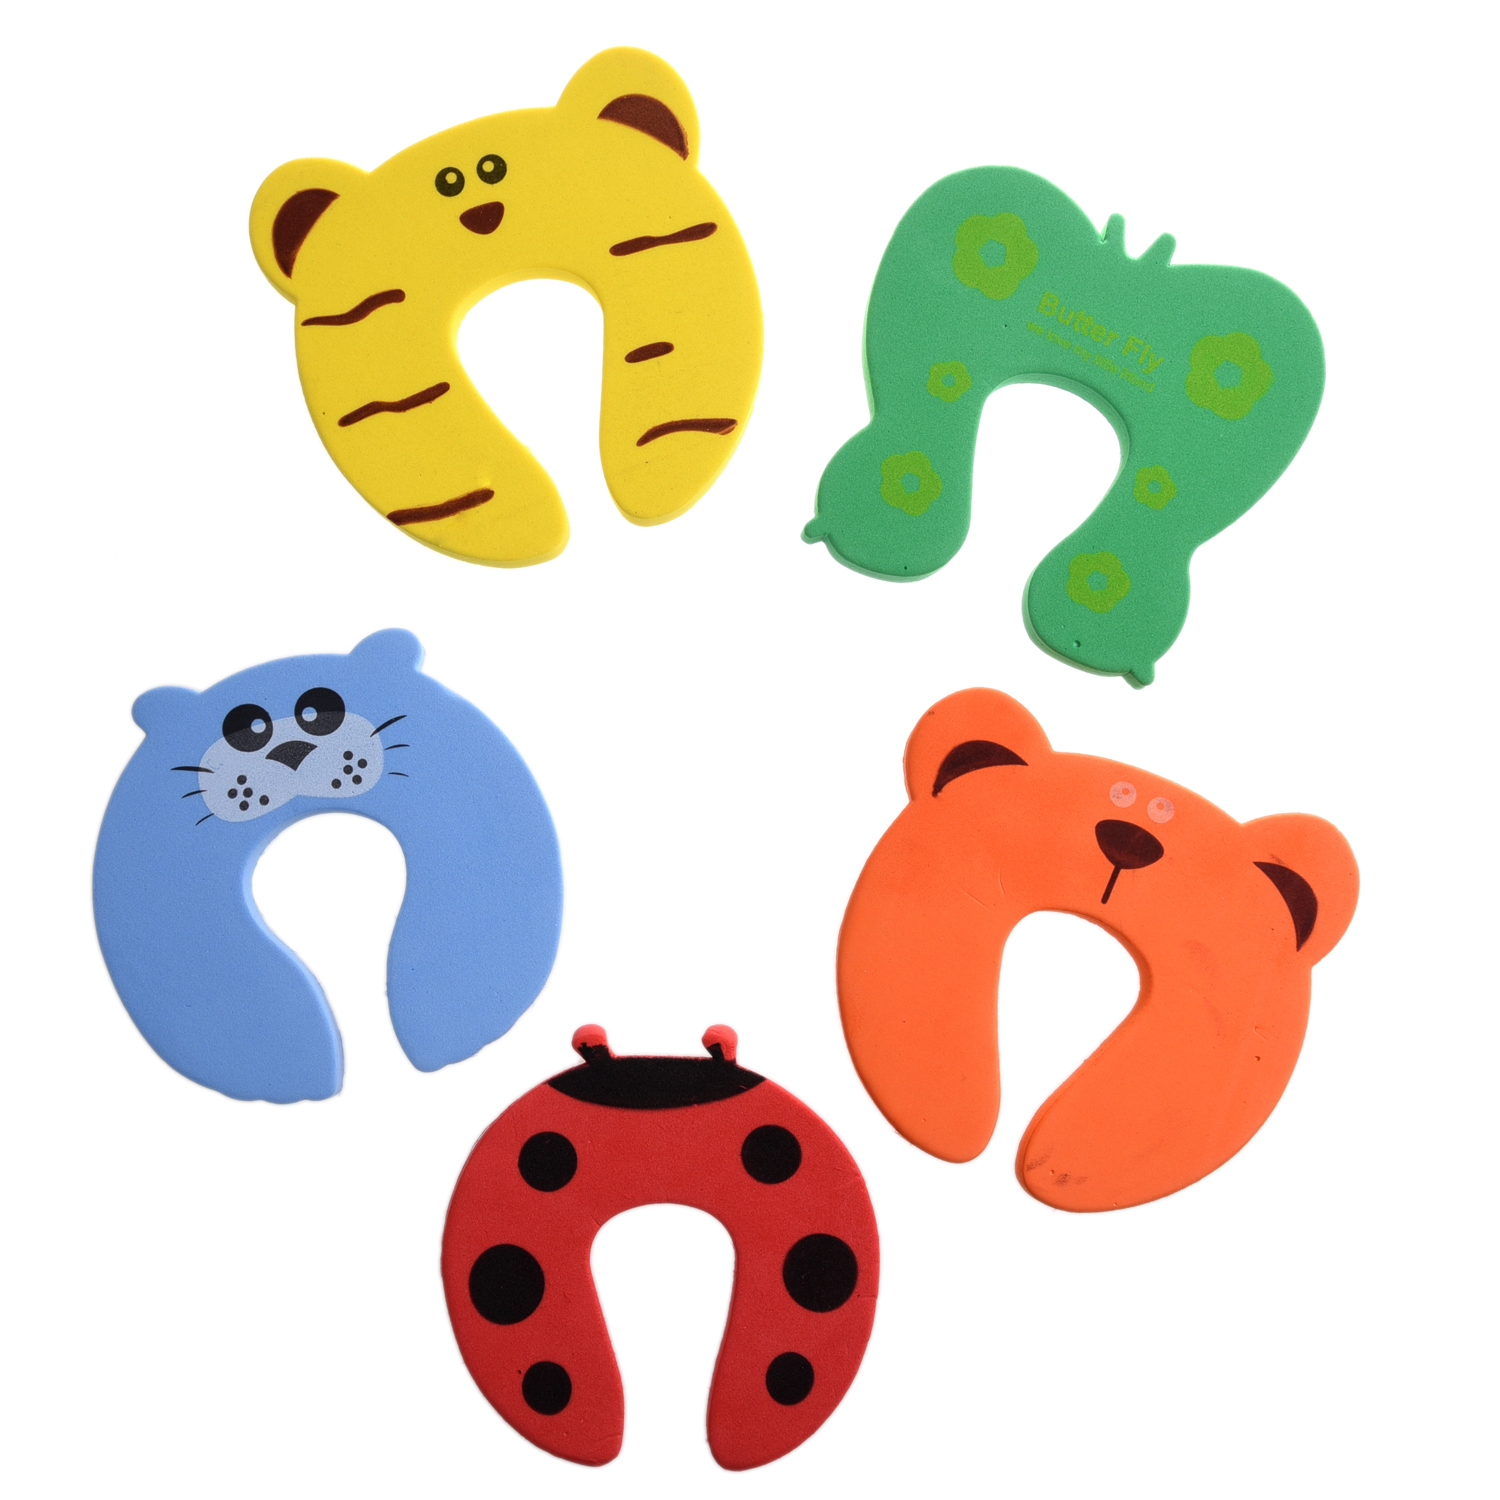 MOOL 5x Baby Kids Door Jammer Finger Pinch Guard Child Toddler Infant Safety Protector Stopper Cute Animal Designs 2014 6x free shipping cute animal designs baby safety door jammer guard finger protector stoppers for random mixed fmj01